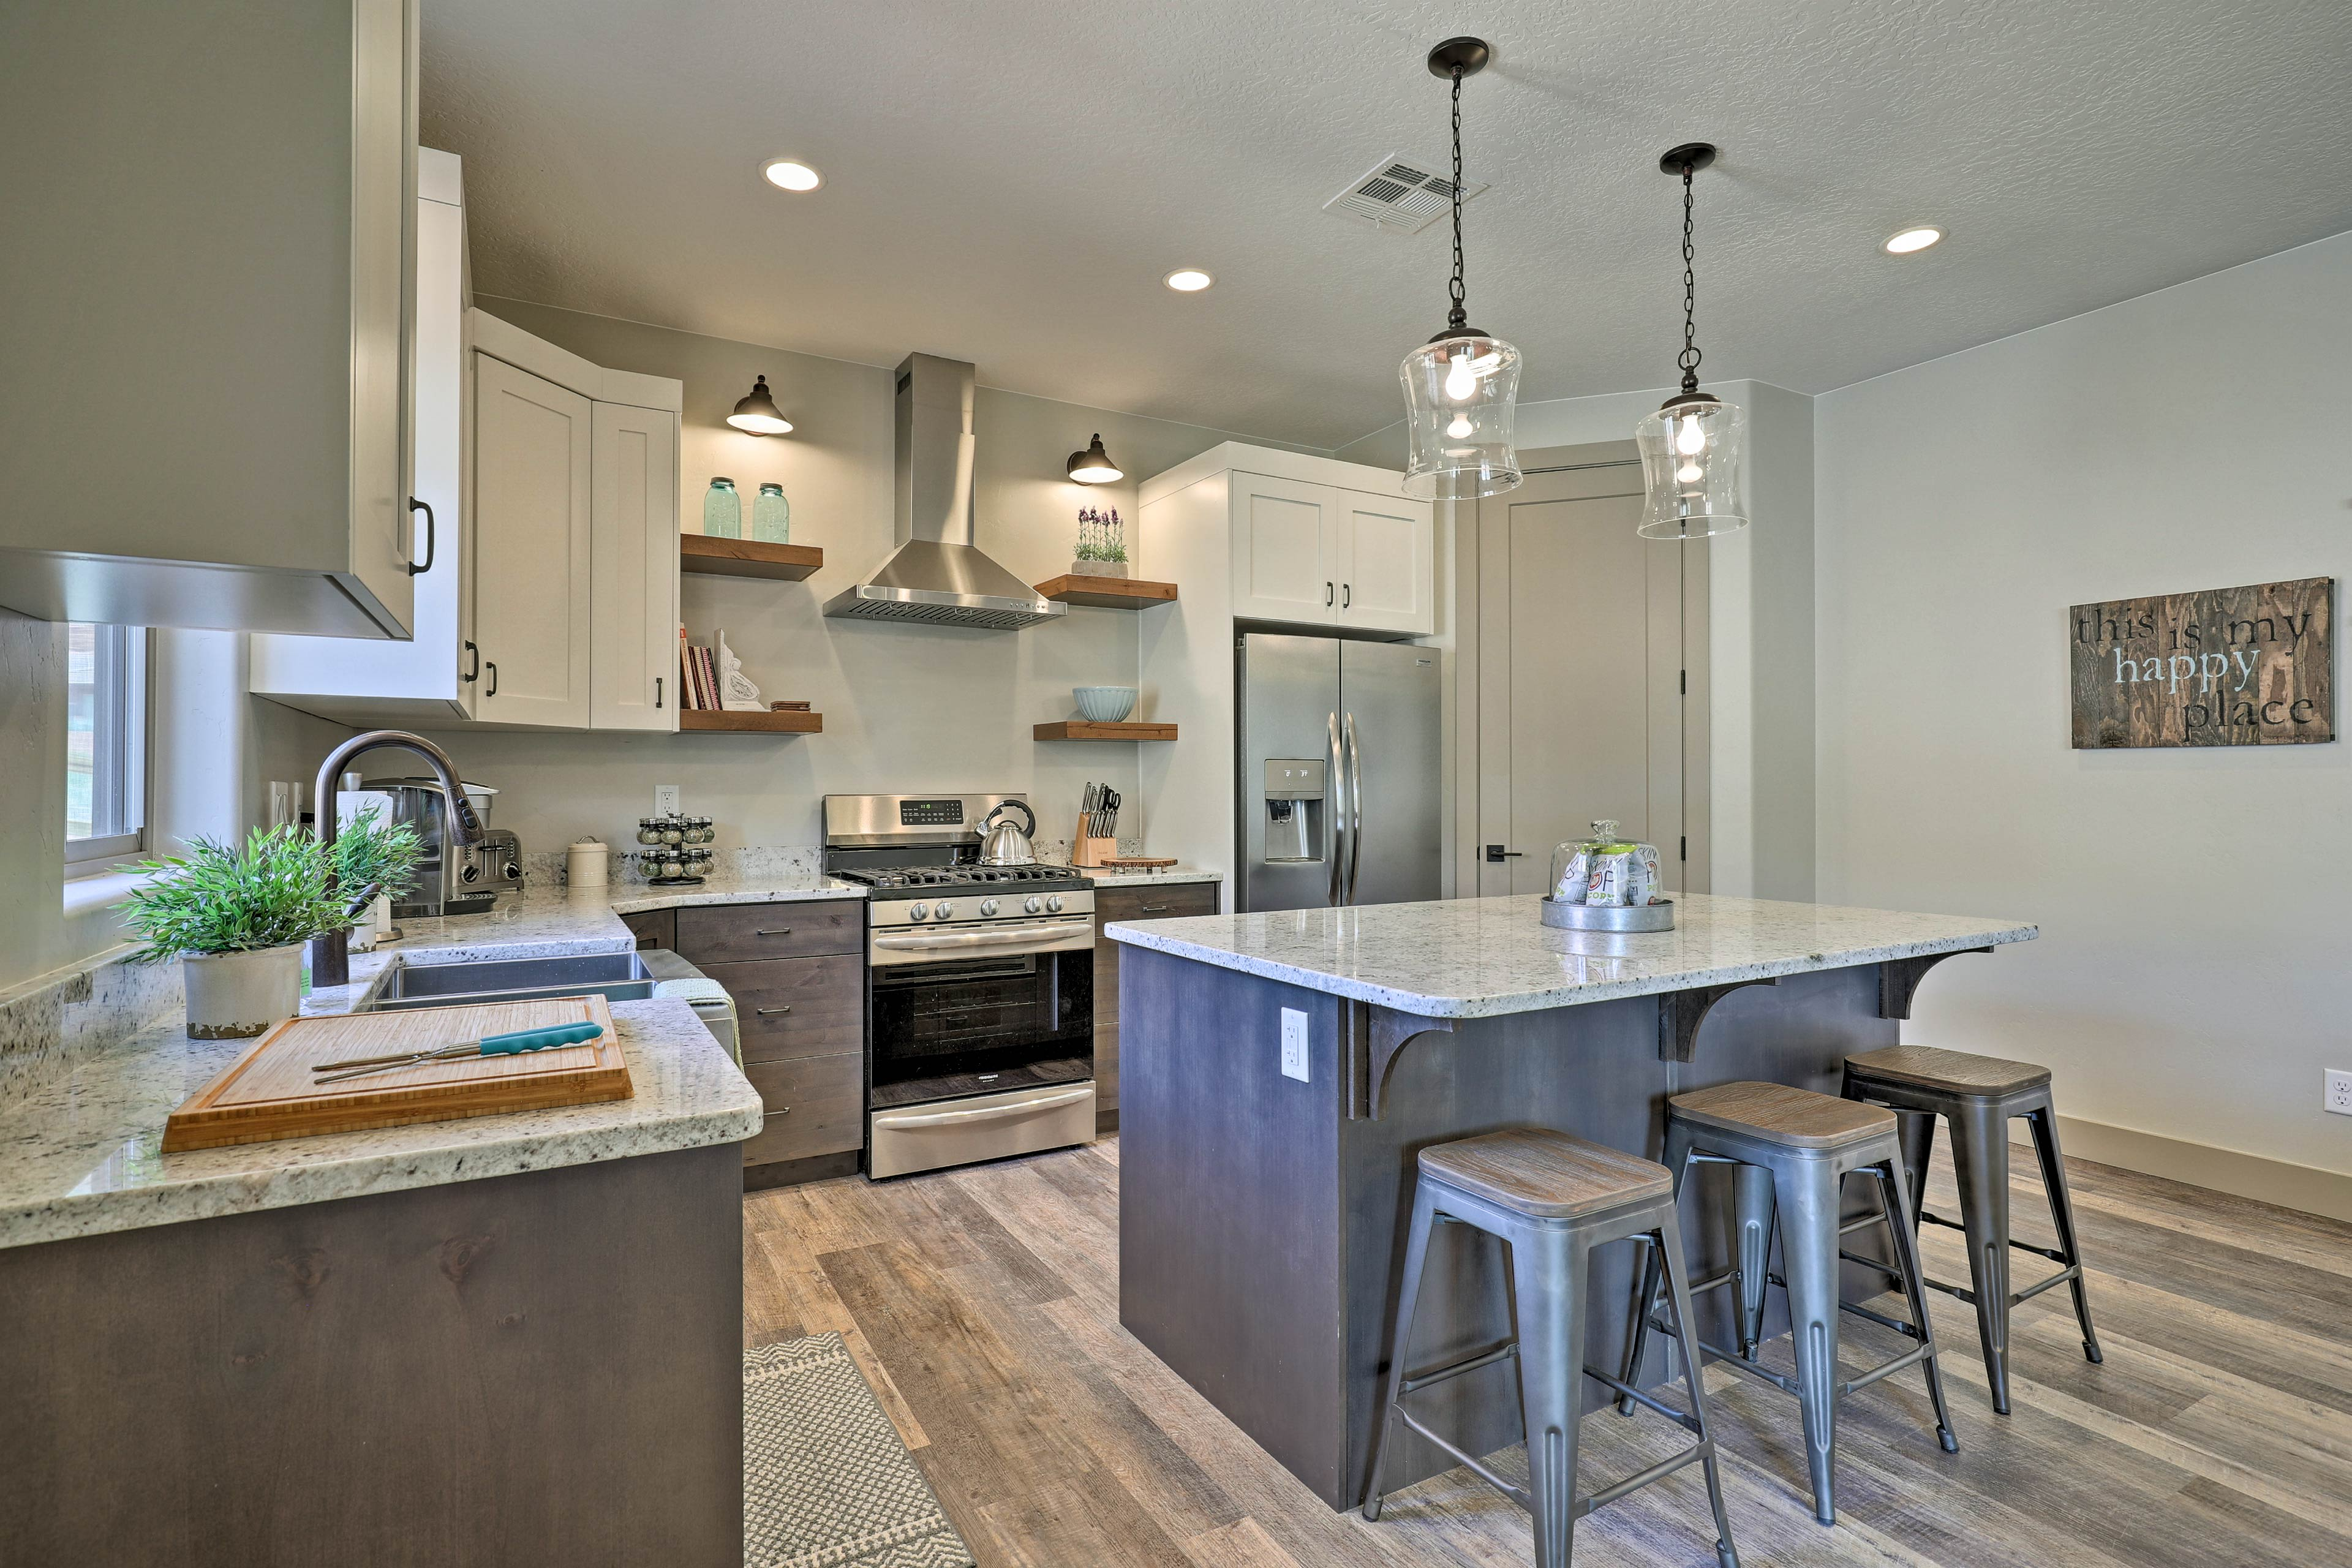 The kitchen comes fully equipped with stainless steel appliances!